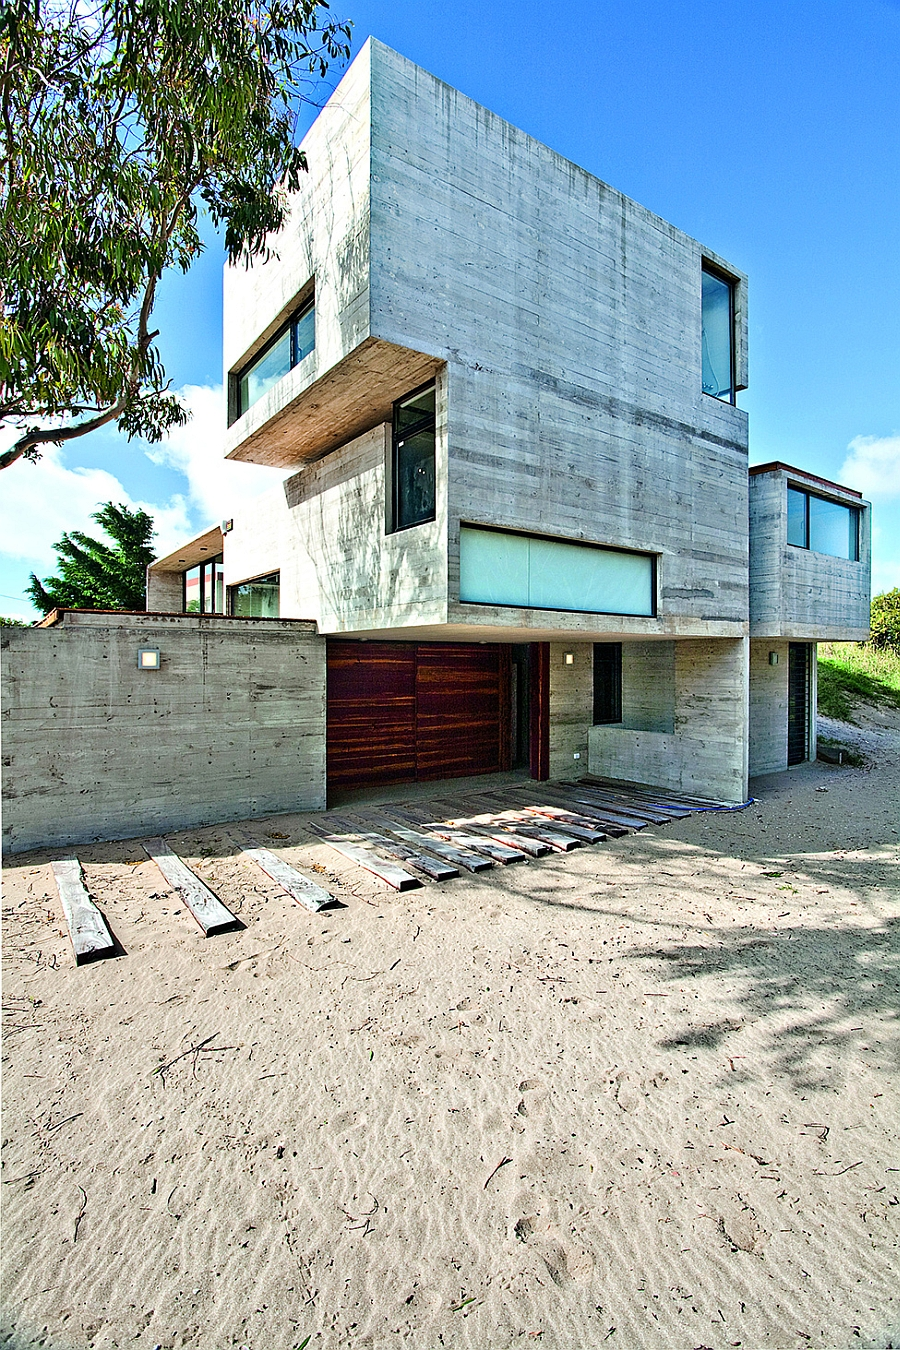 Exterior of the concrete house